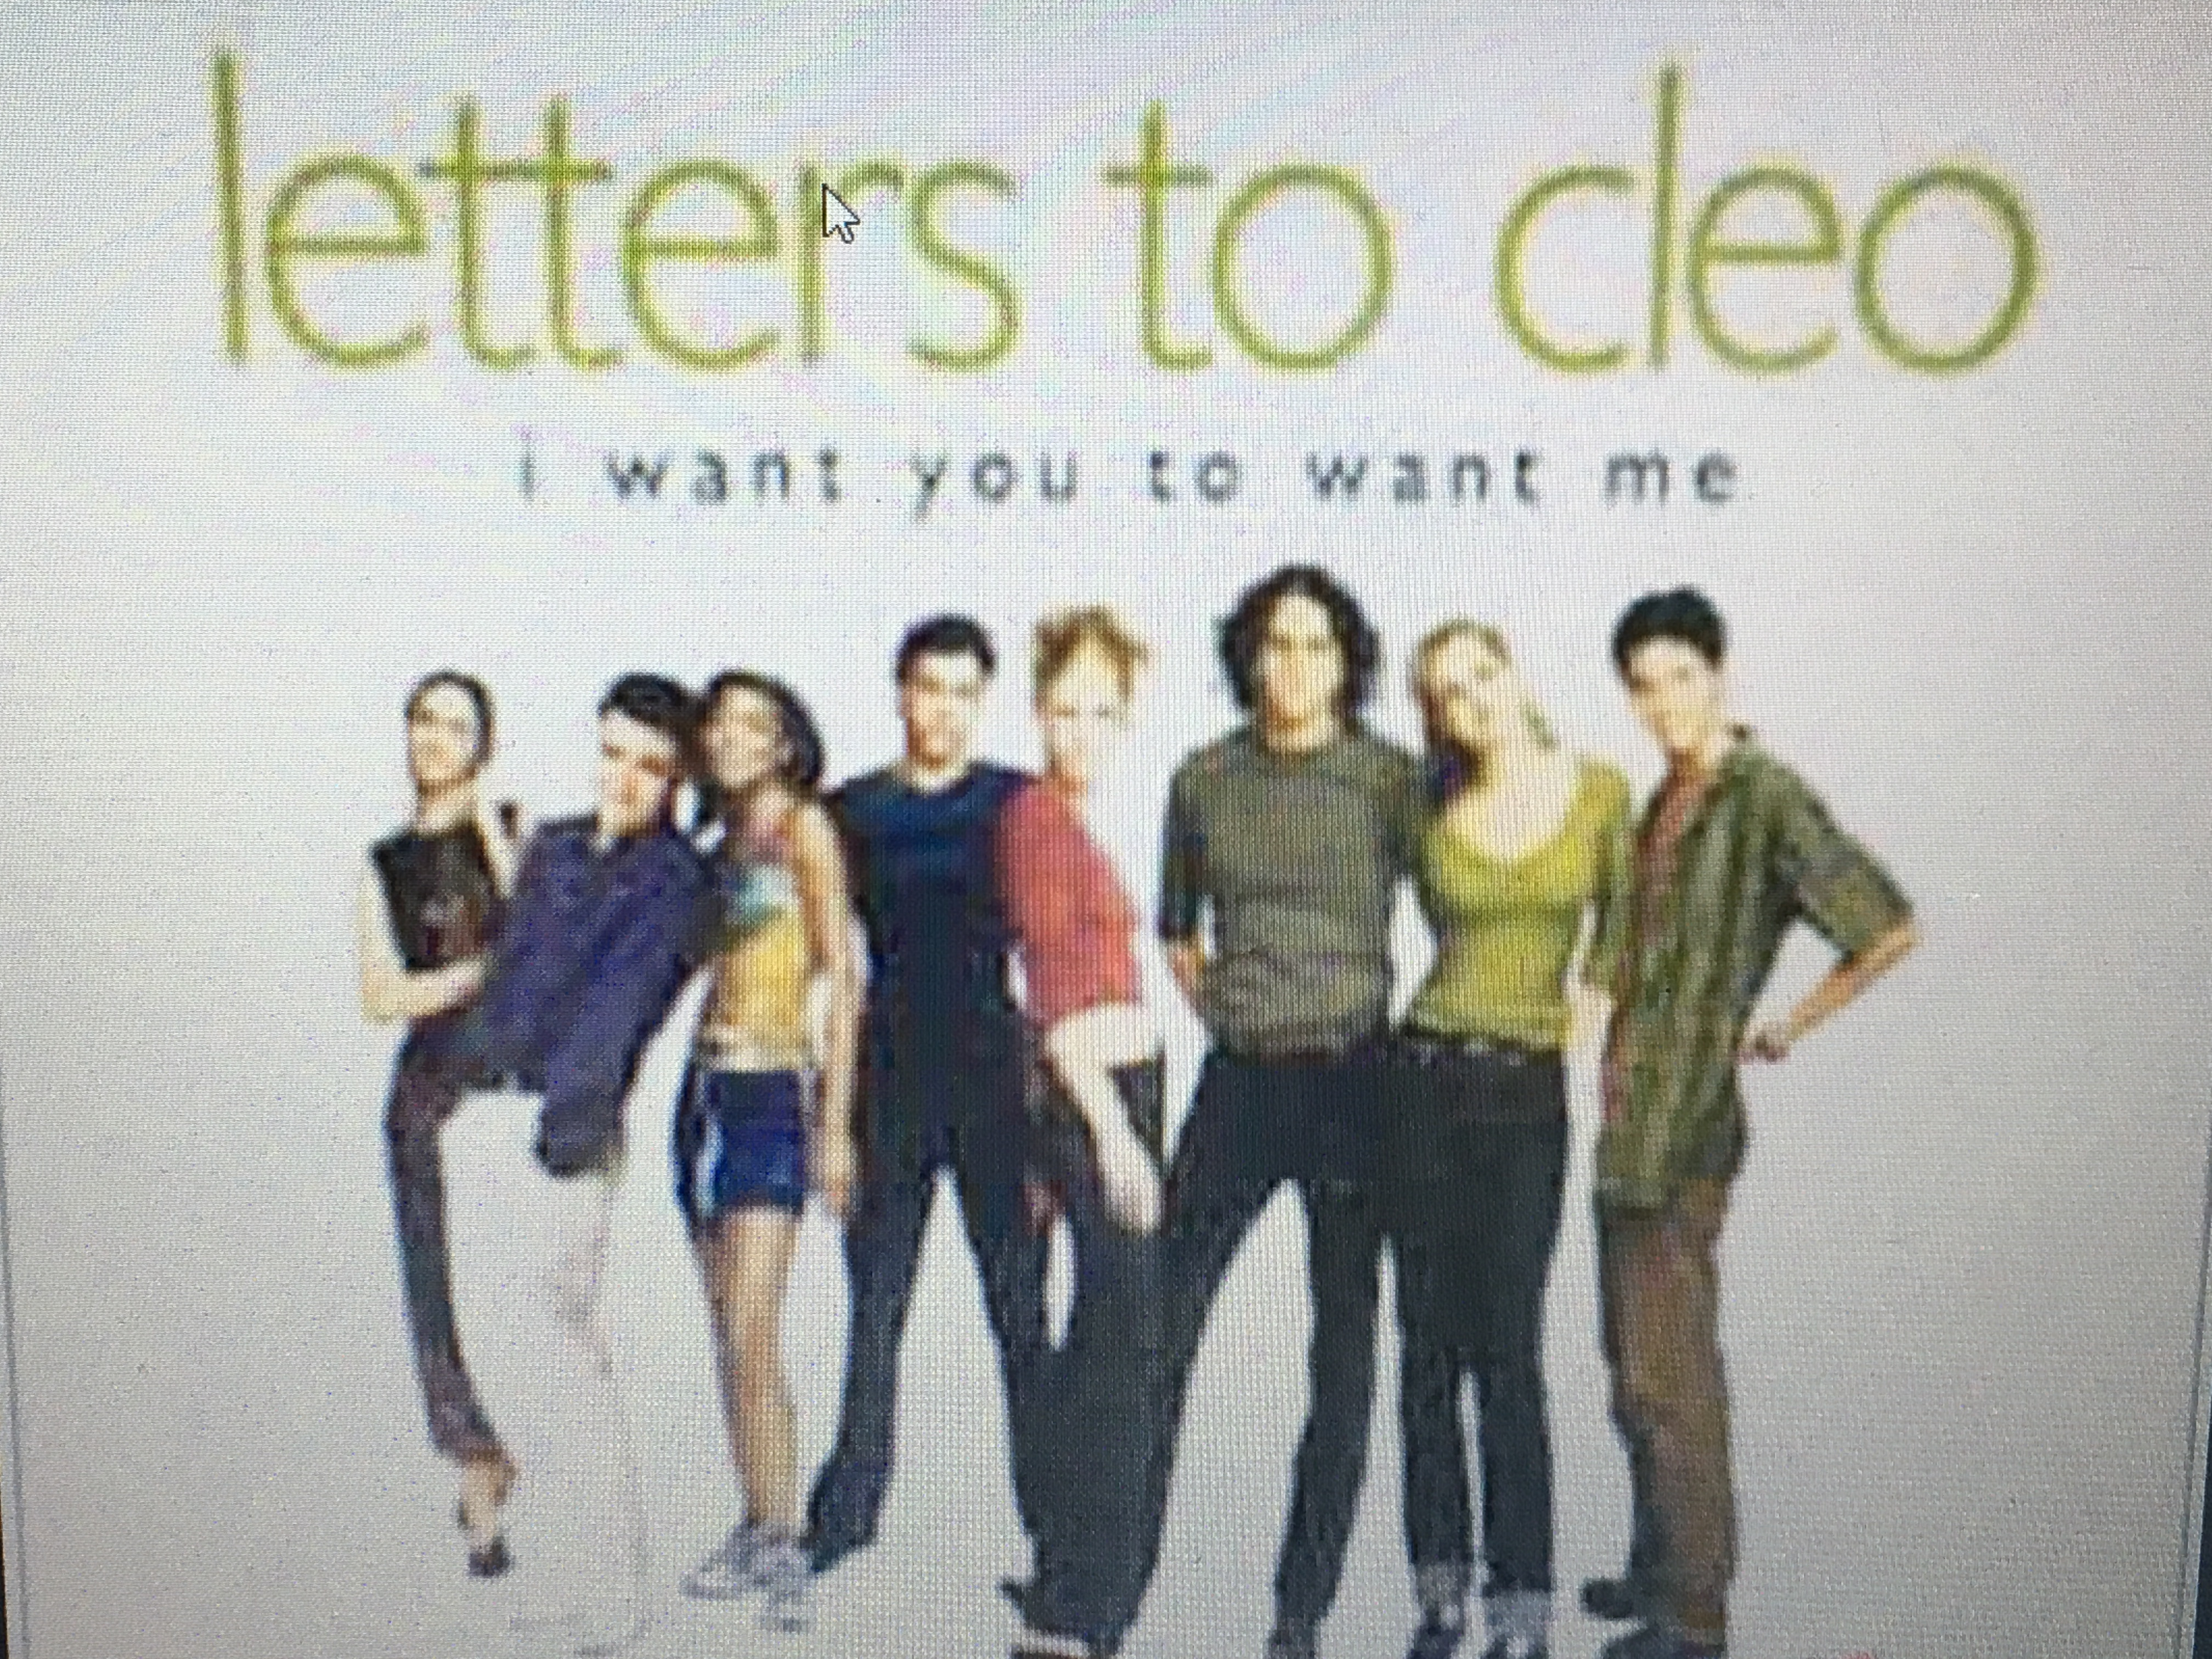 File Letters To Cleo Wikimedia mons